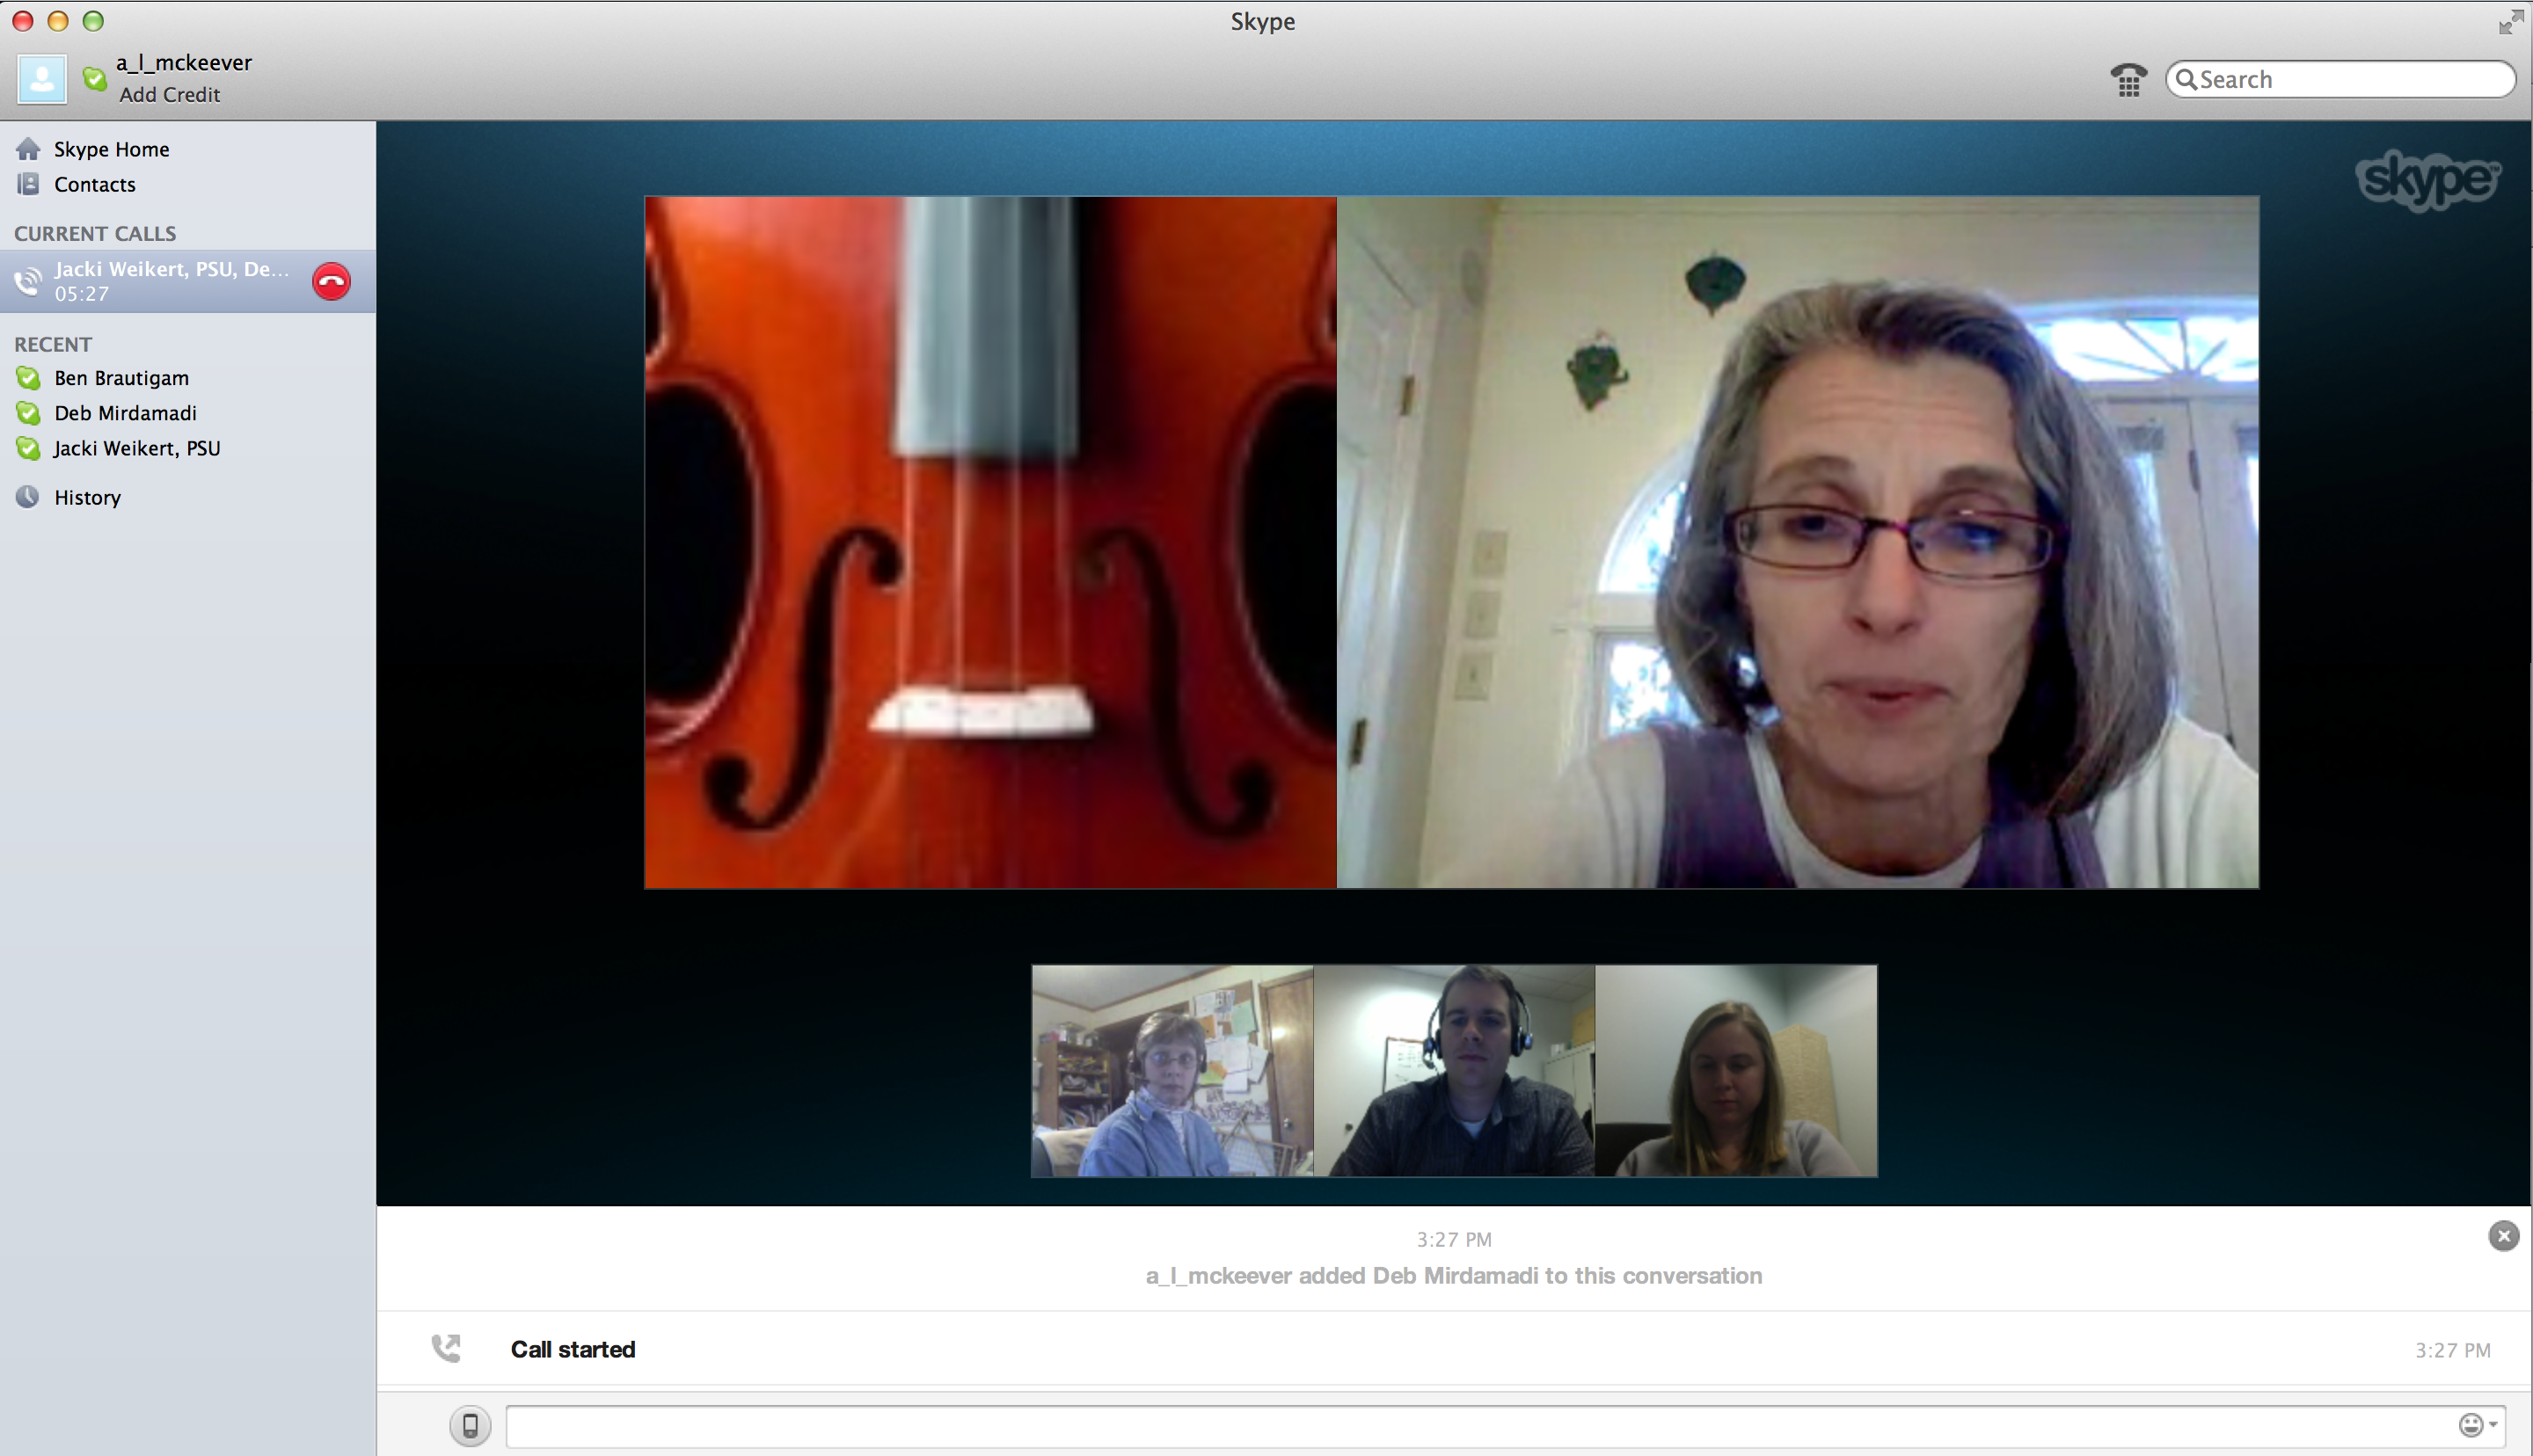 A display of the Skype interface when instructor Deborah Mirdamadi shared her experiences about Skype with the team.